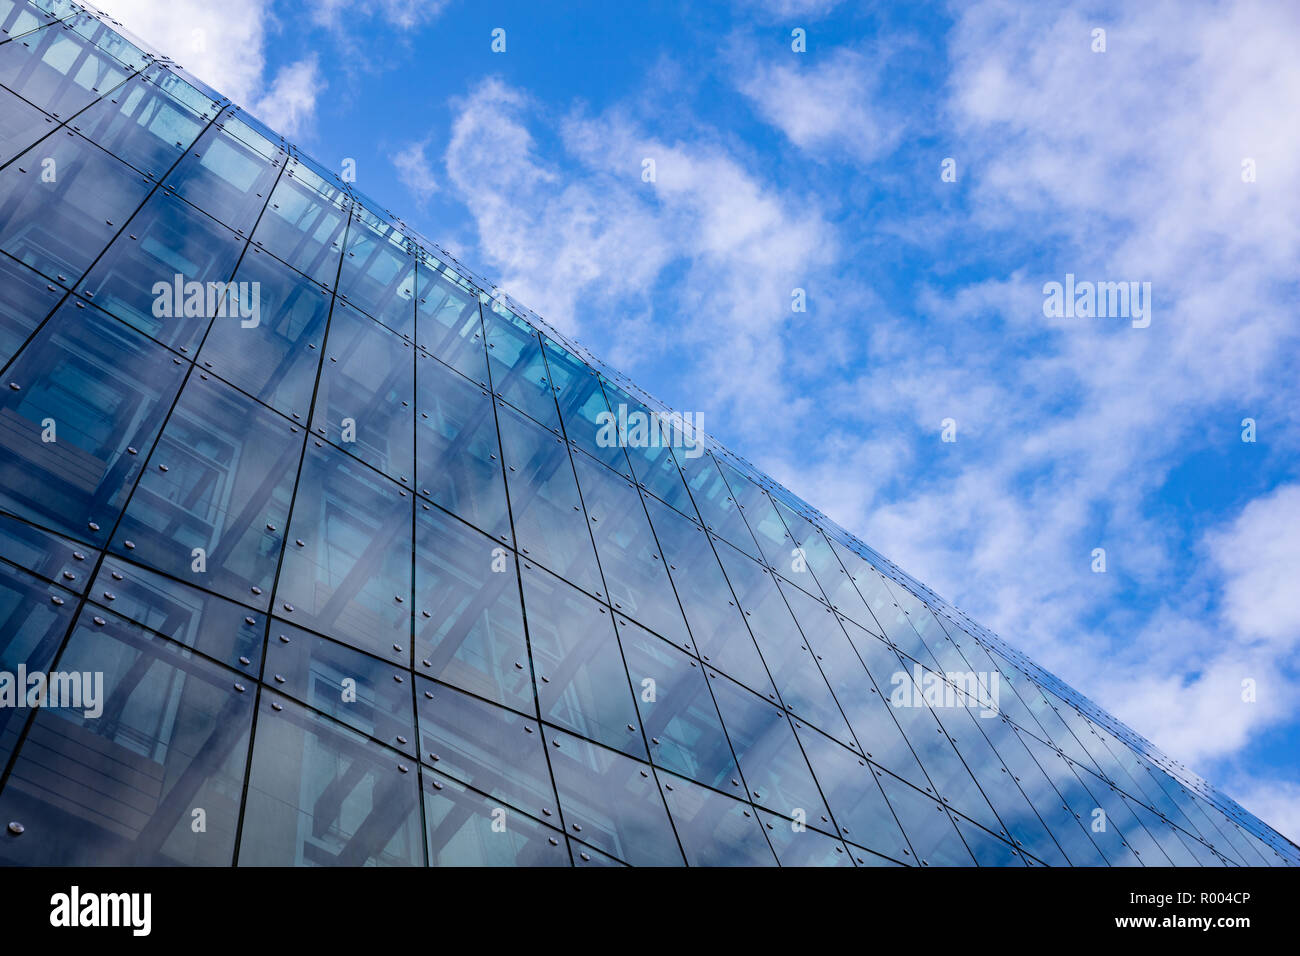 Glass and steel skyscraper multi story office building in Berlin, Germany, low angle, against blue sky background. - Stock Image